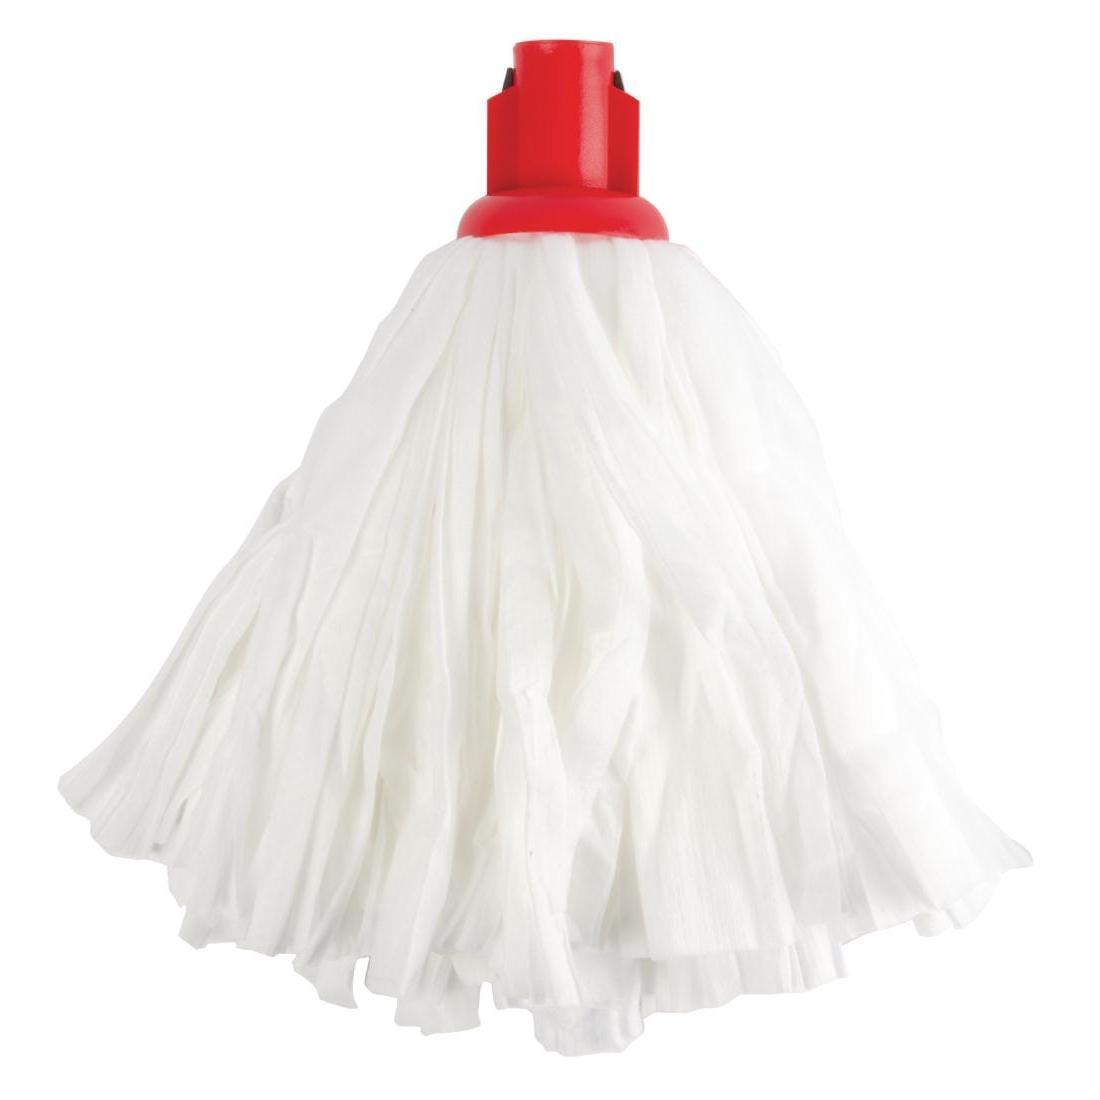 Jantex Standard Big White Socket Mop Head Red